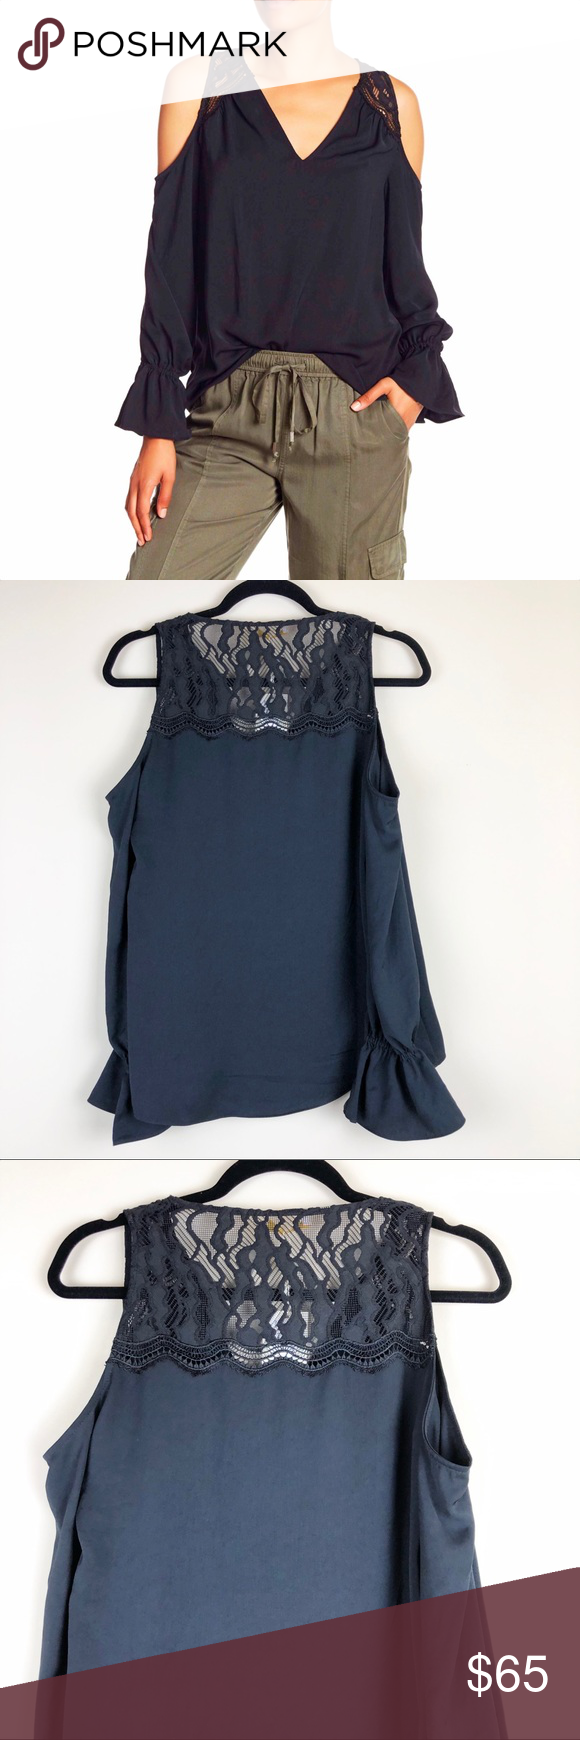 8c3604d05bff5 Ramy Brook Abigail Lace Cold Shoulder Blouse Shoulder and back lace panel  blouse with elasticized cuffs. Pit to pit 18.5 A0170 Ramy Brook Tops Blouses